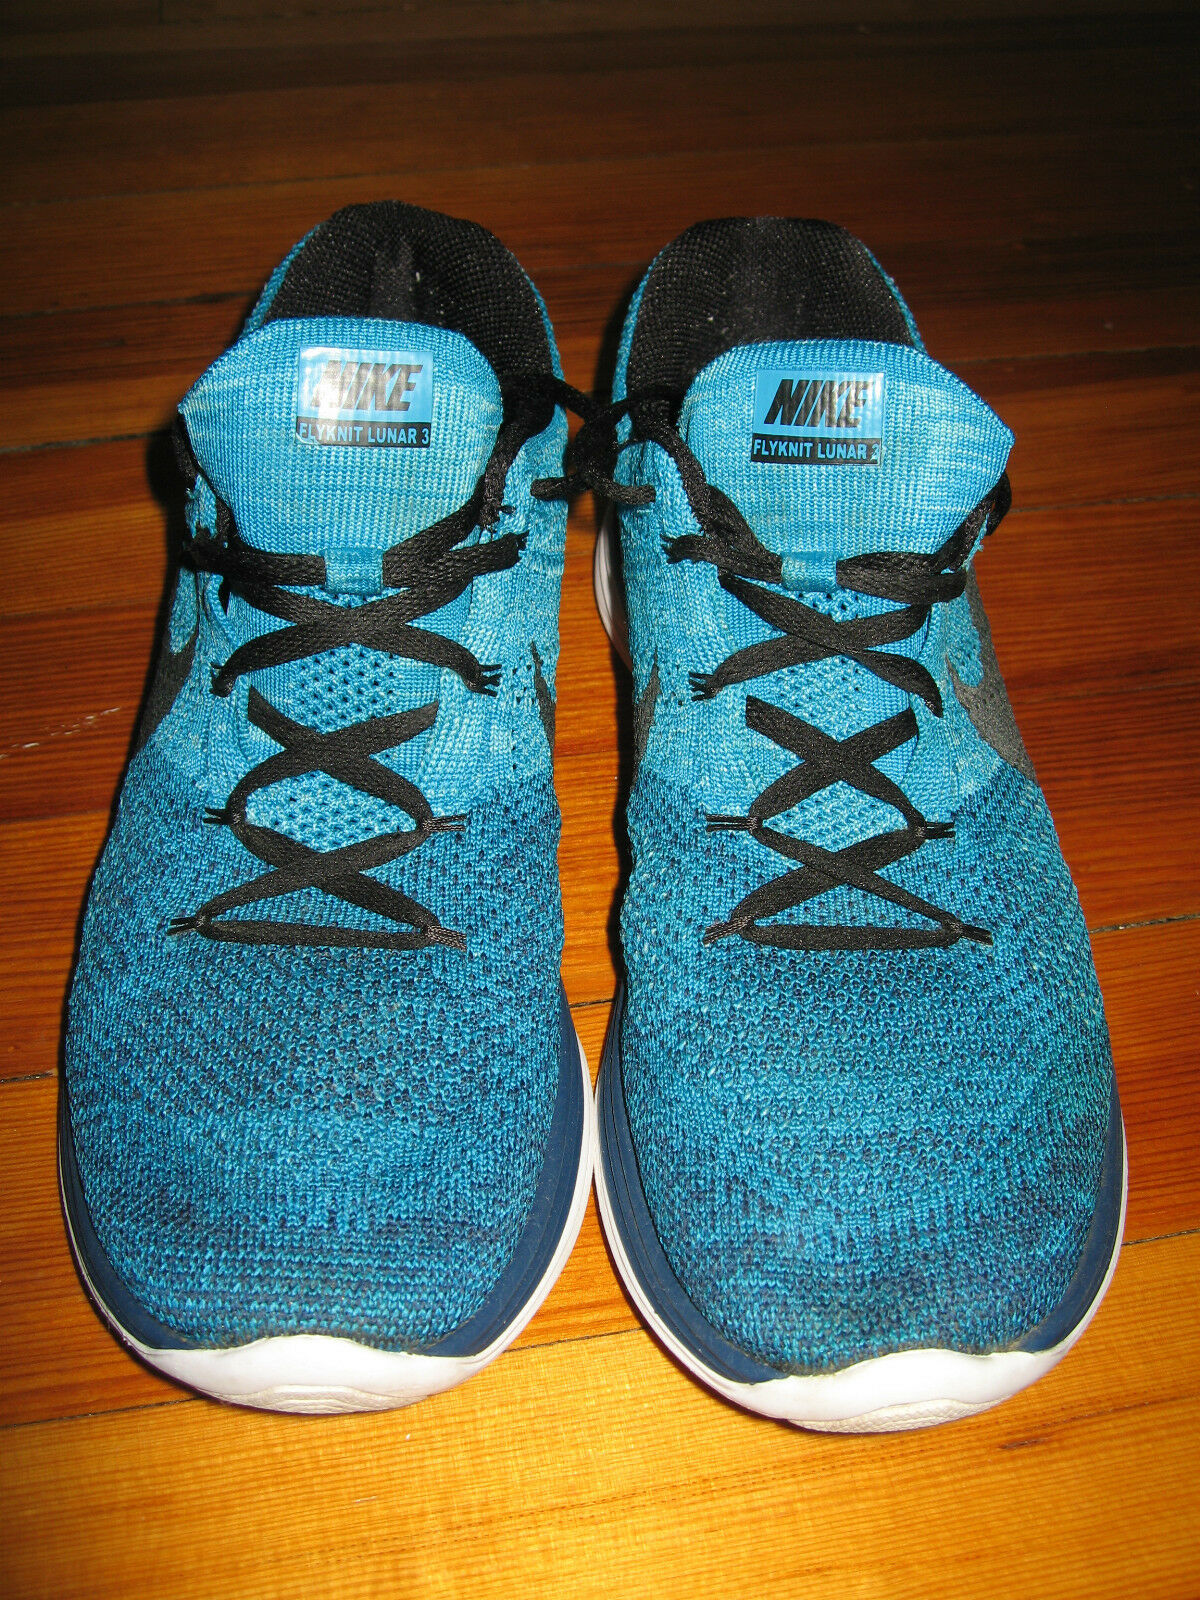 Pre-owned NIKE Flyknit Lunar 3 Blue Size Casual Running Sneakers Shoes Size Blue 11 dfe7e5